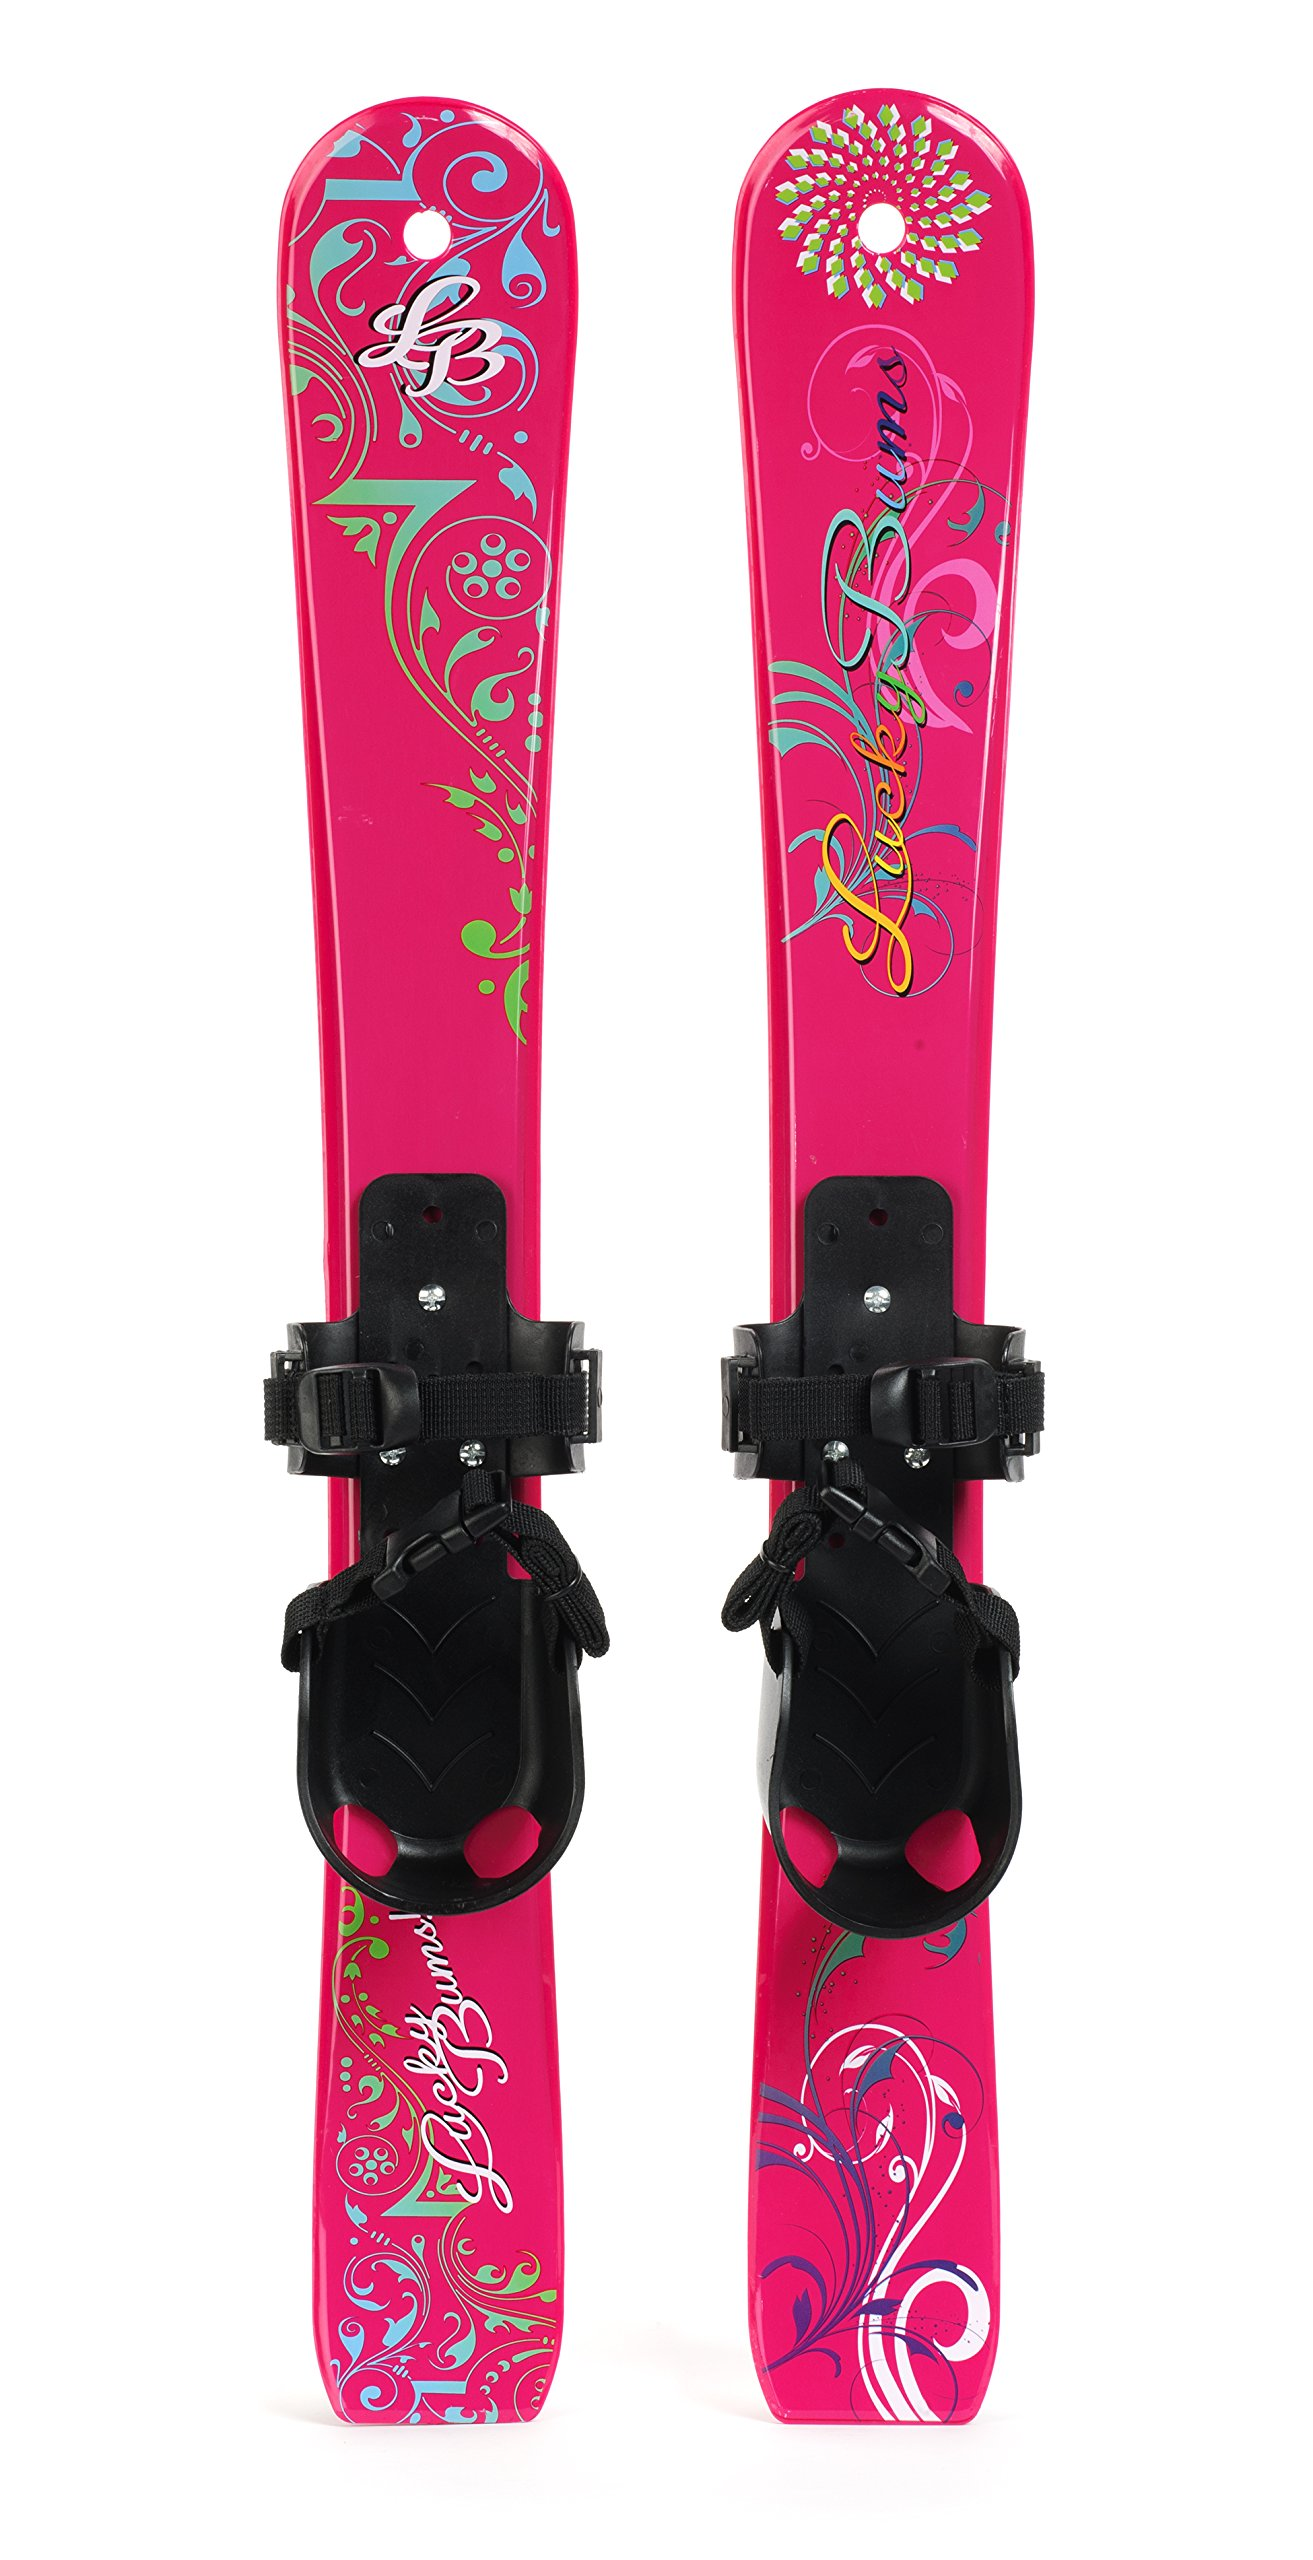 Lucky Bums Kids' Beginner Snow Skis without Poles, Pink/Black, 70 Centimeters by Lucky Bums